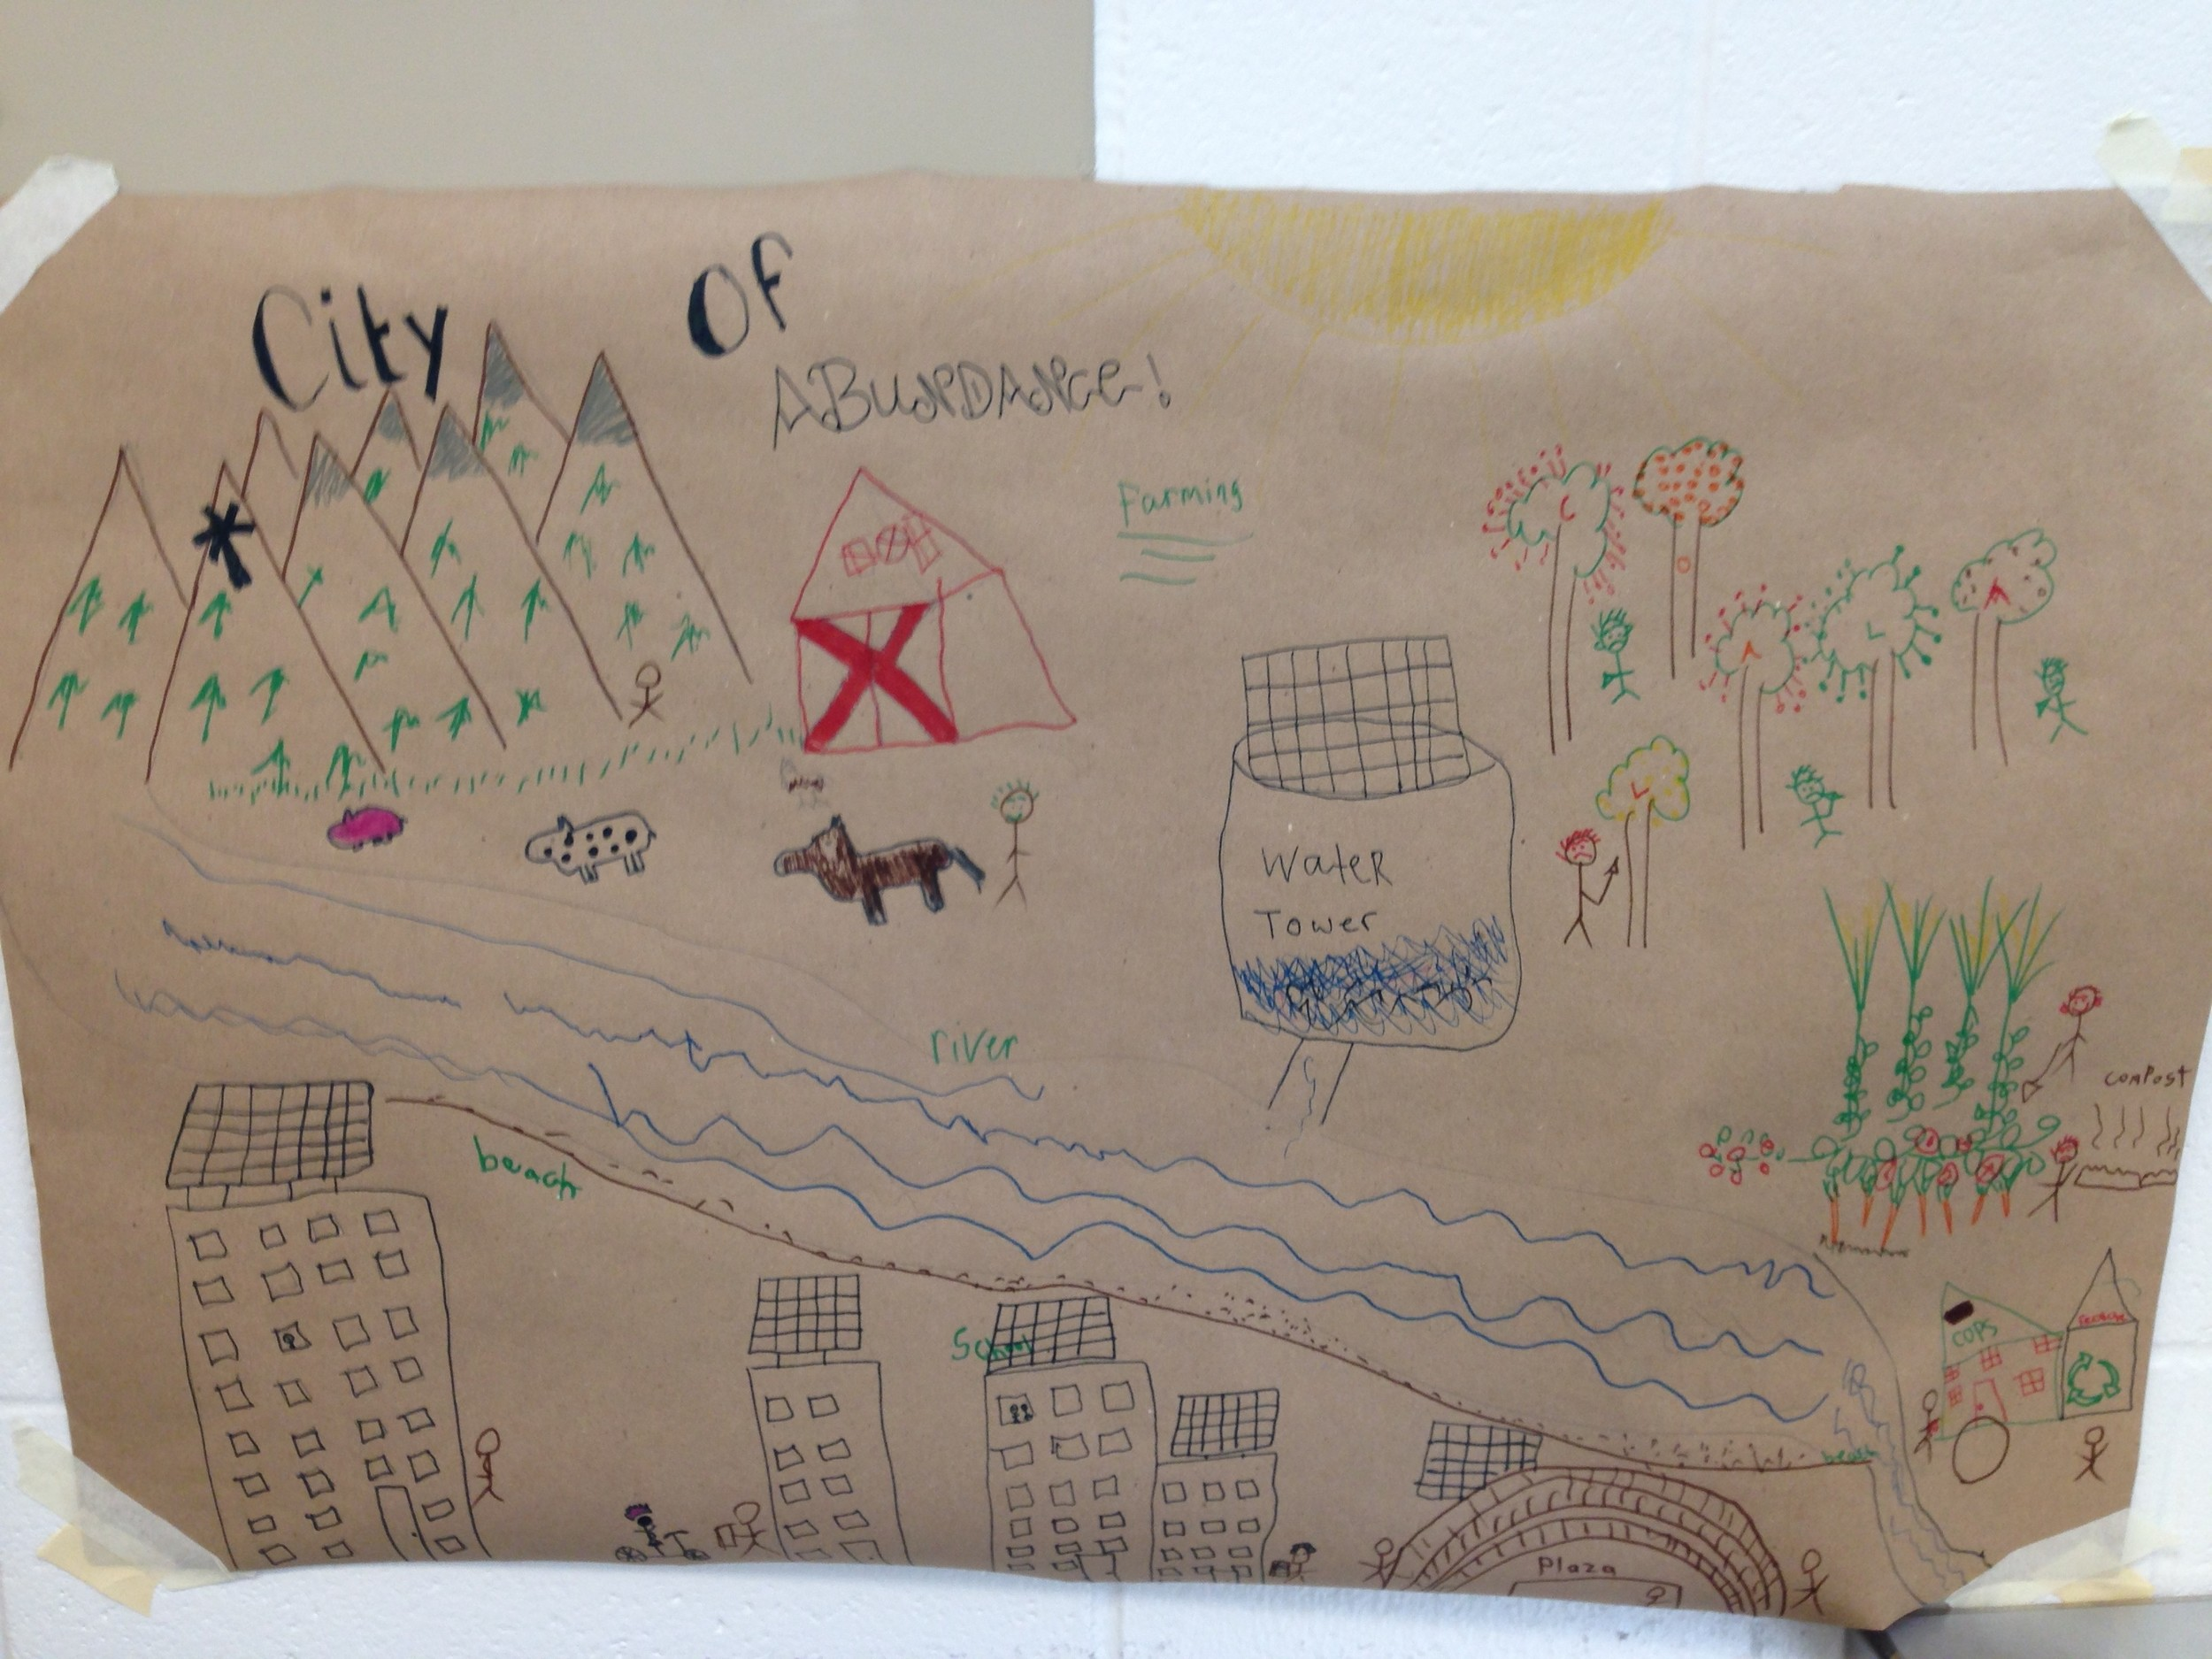 A sustainable city as designed by our students